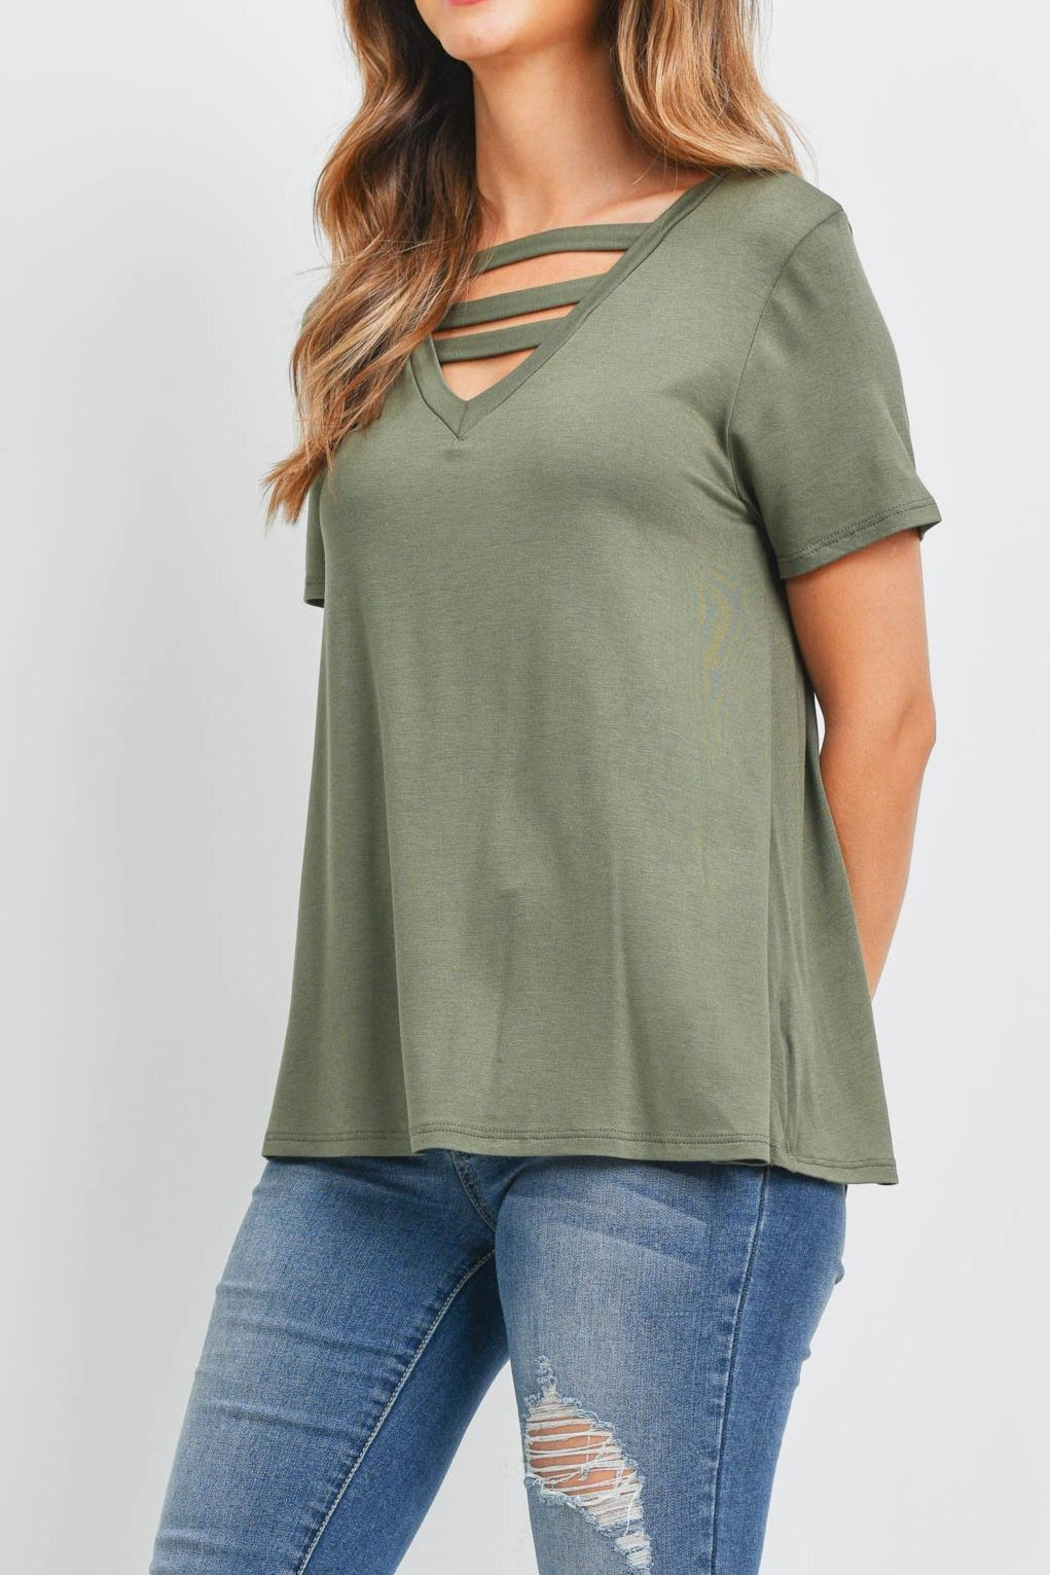 Riah Fashion Triple Strap Neck Solid Top - Side Cropped Image